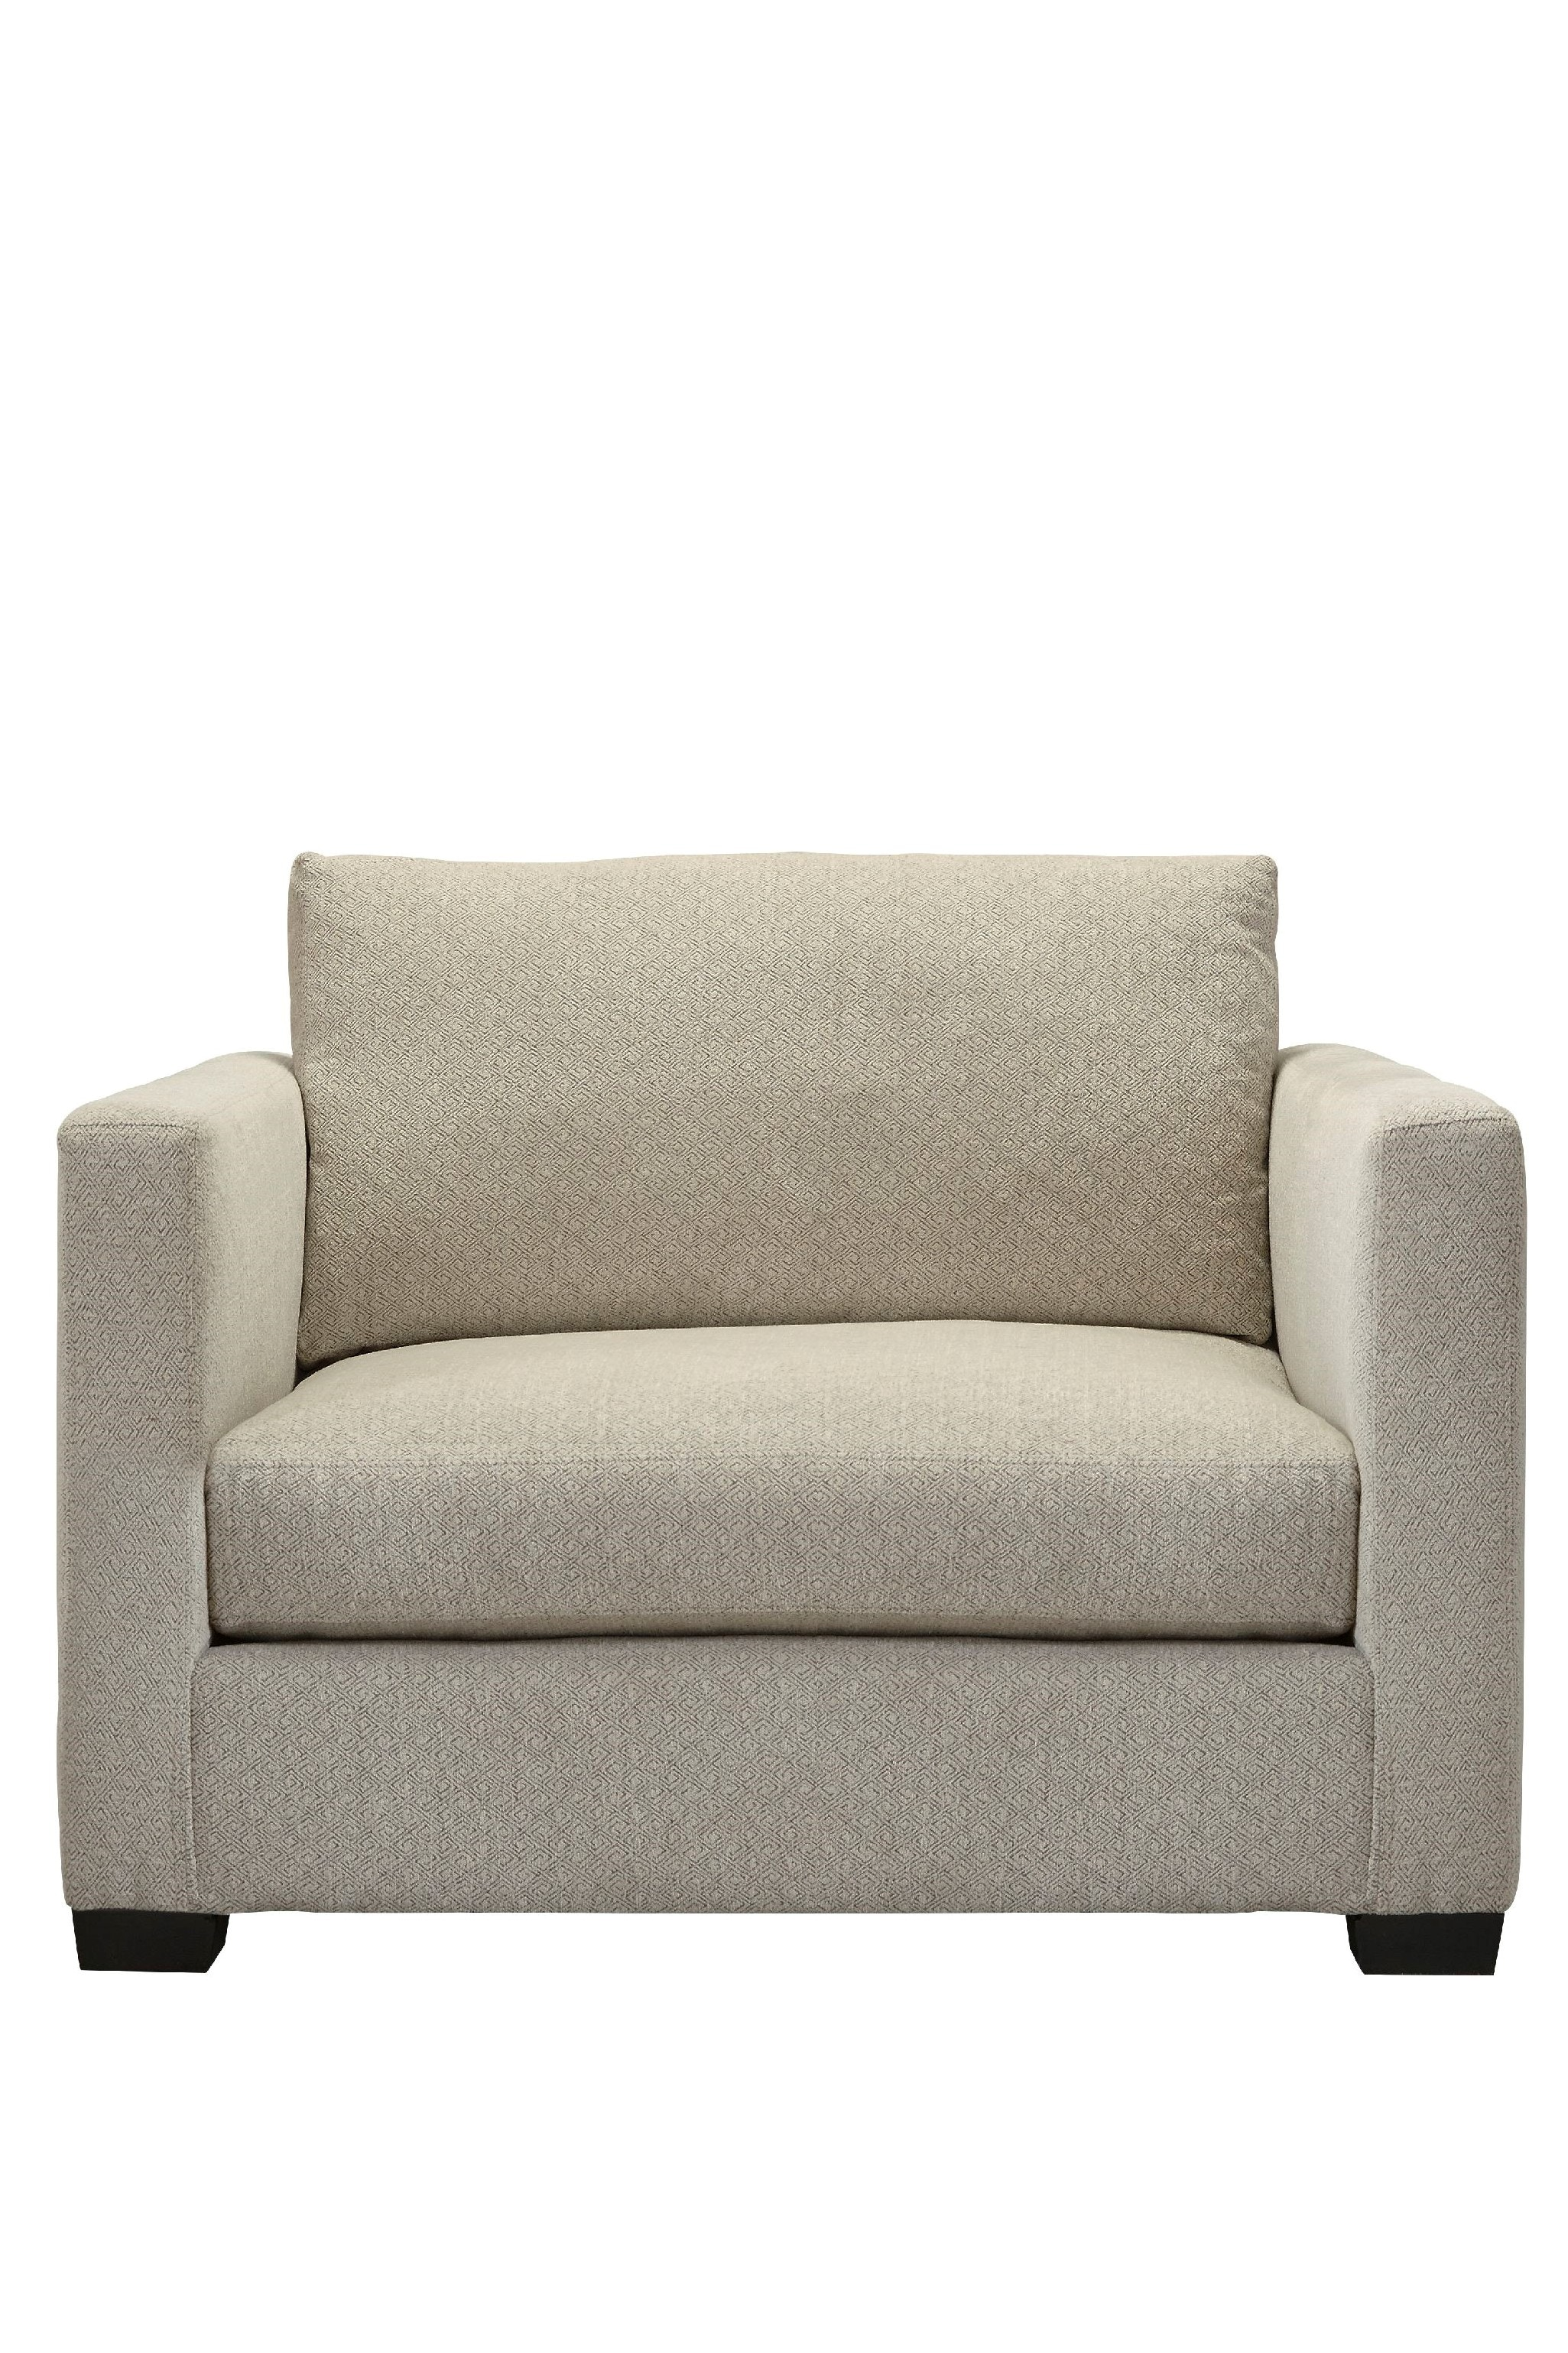 Stacy Select McCoy Chair 1/2 26113